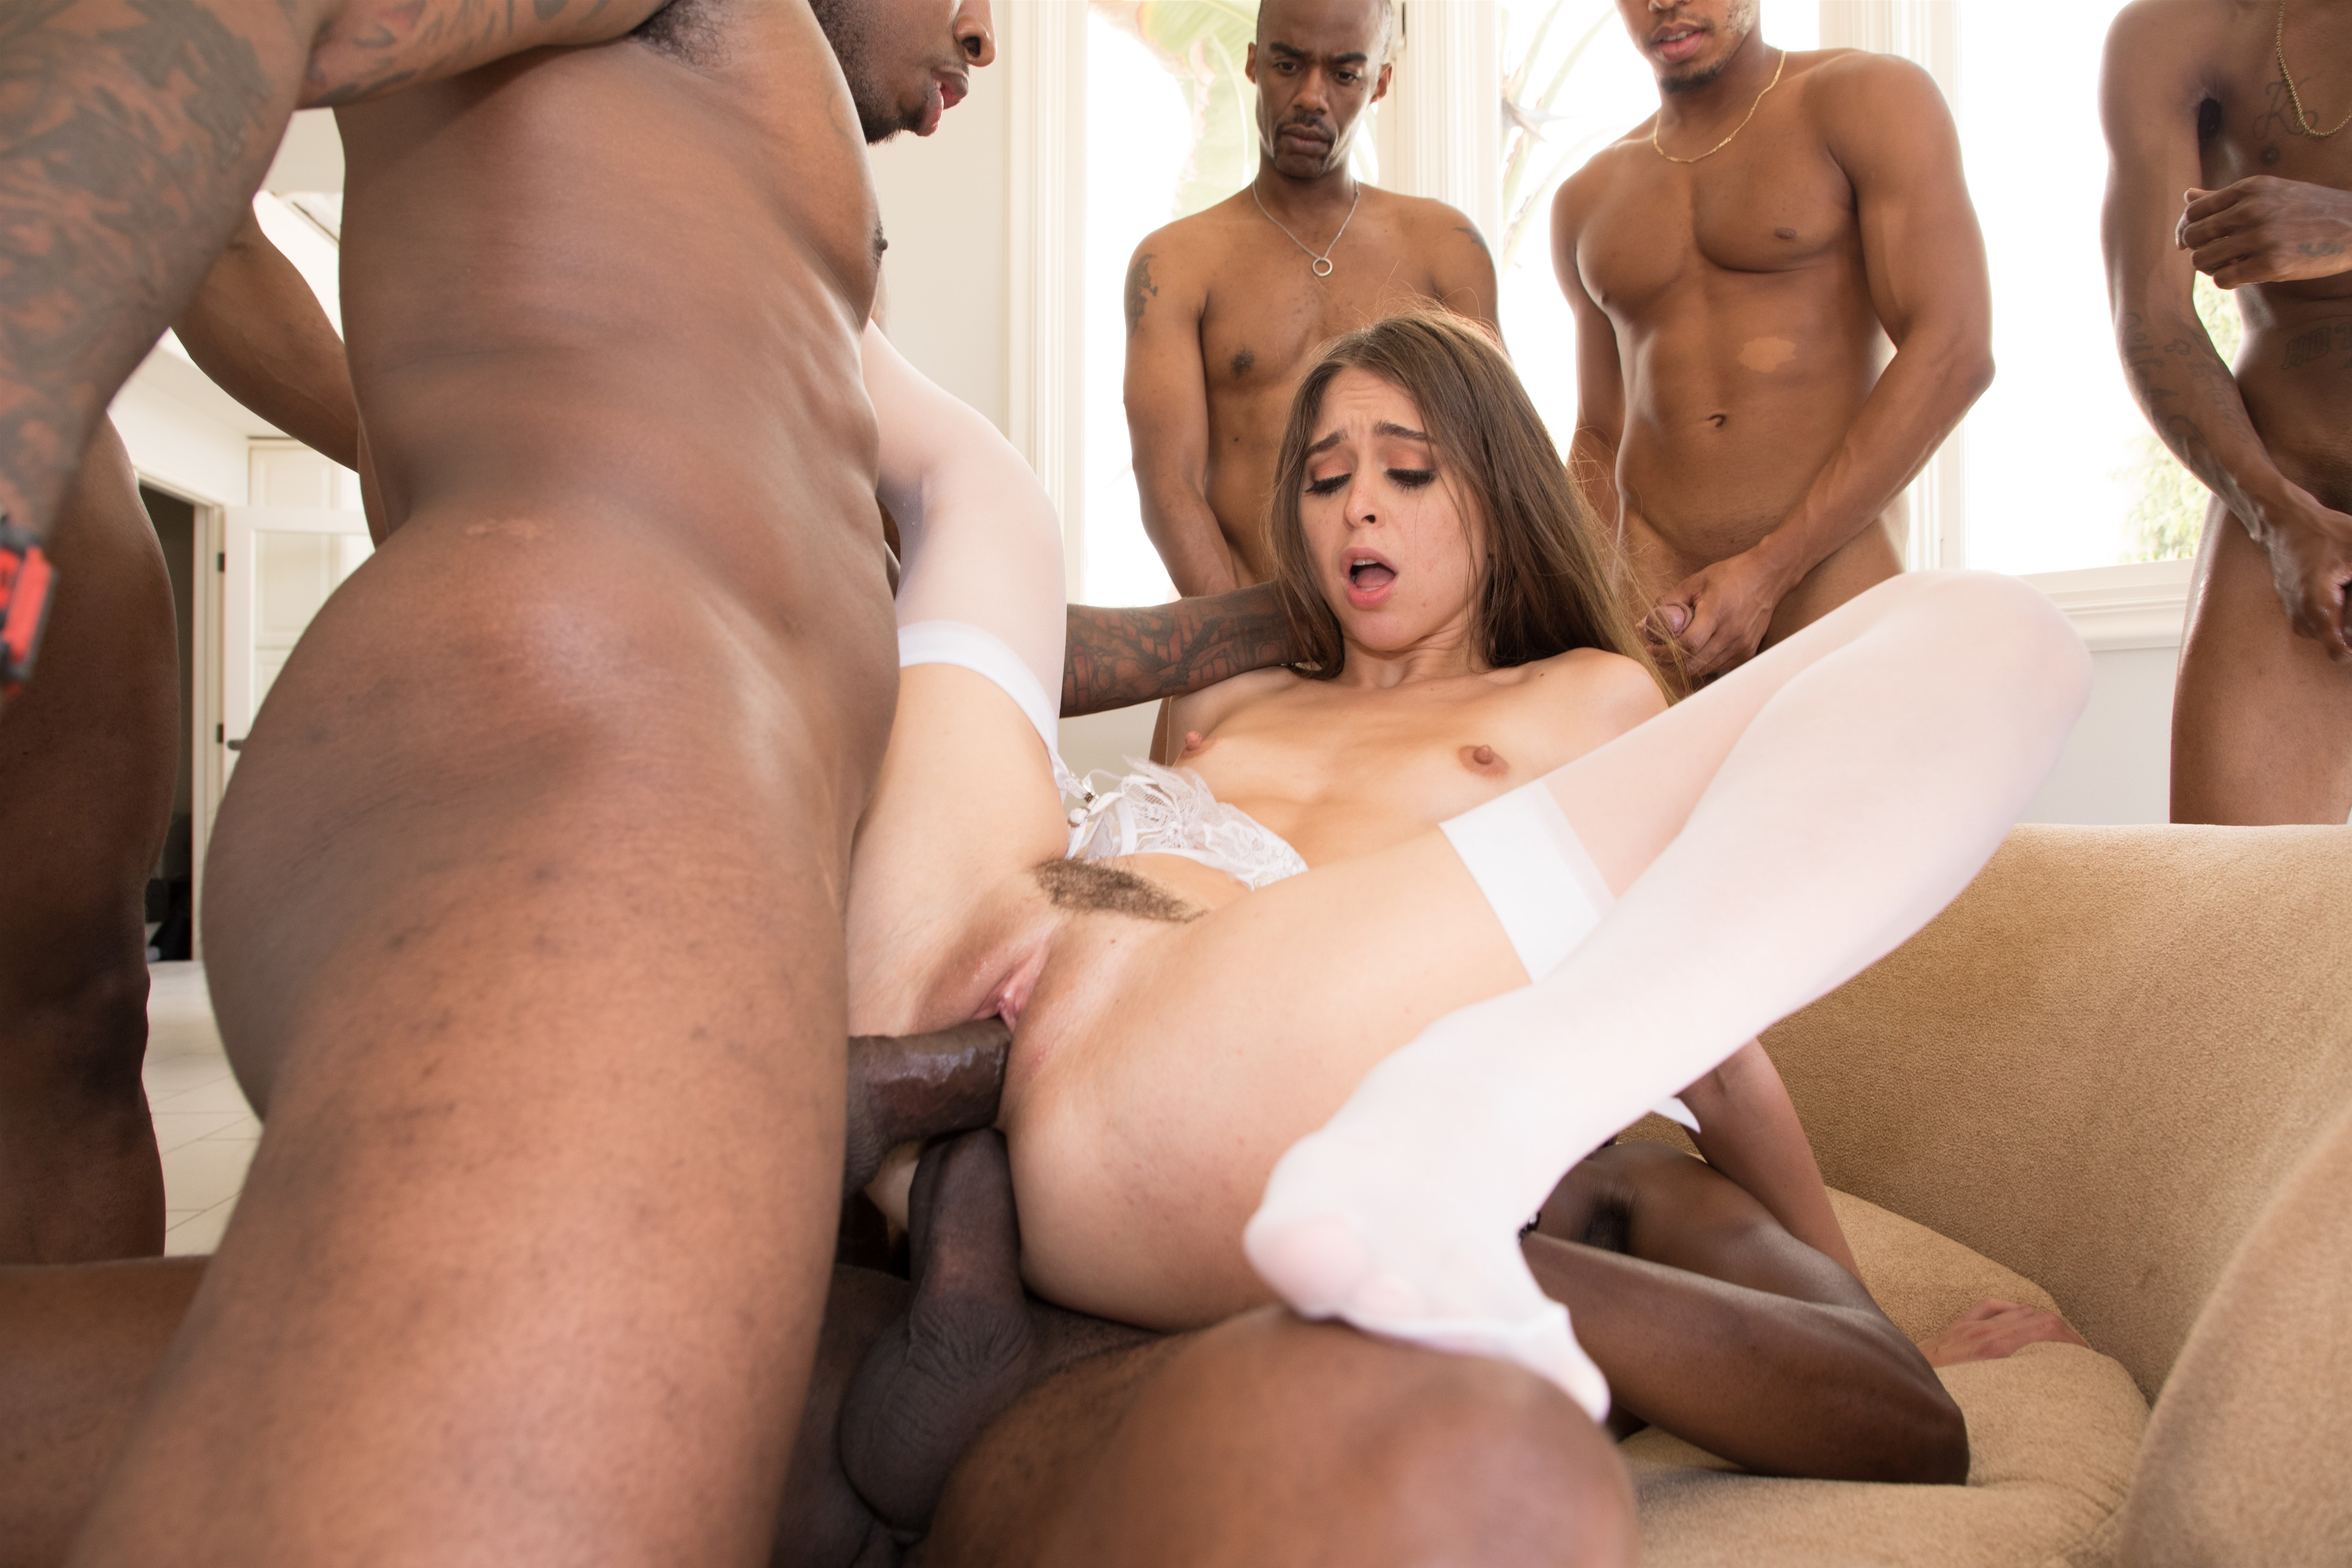 Download xpics this is my first a gangbang picture